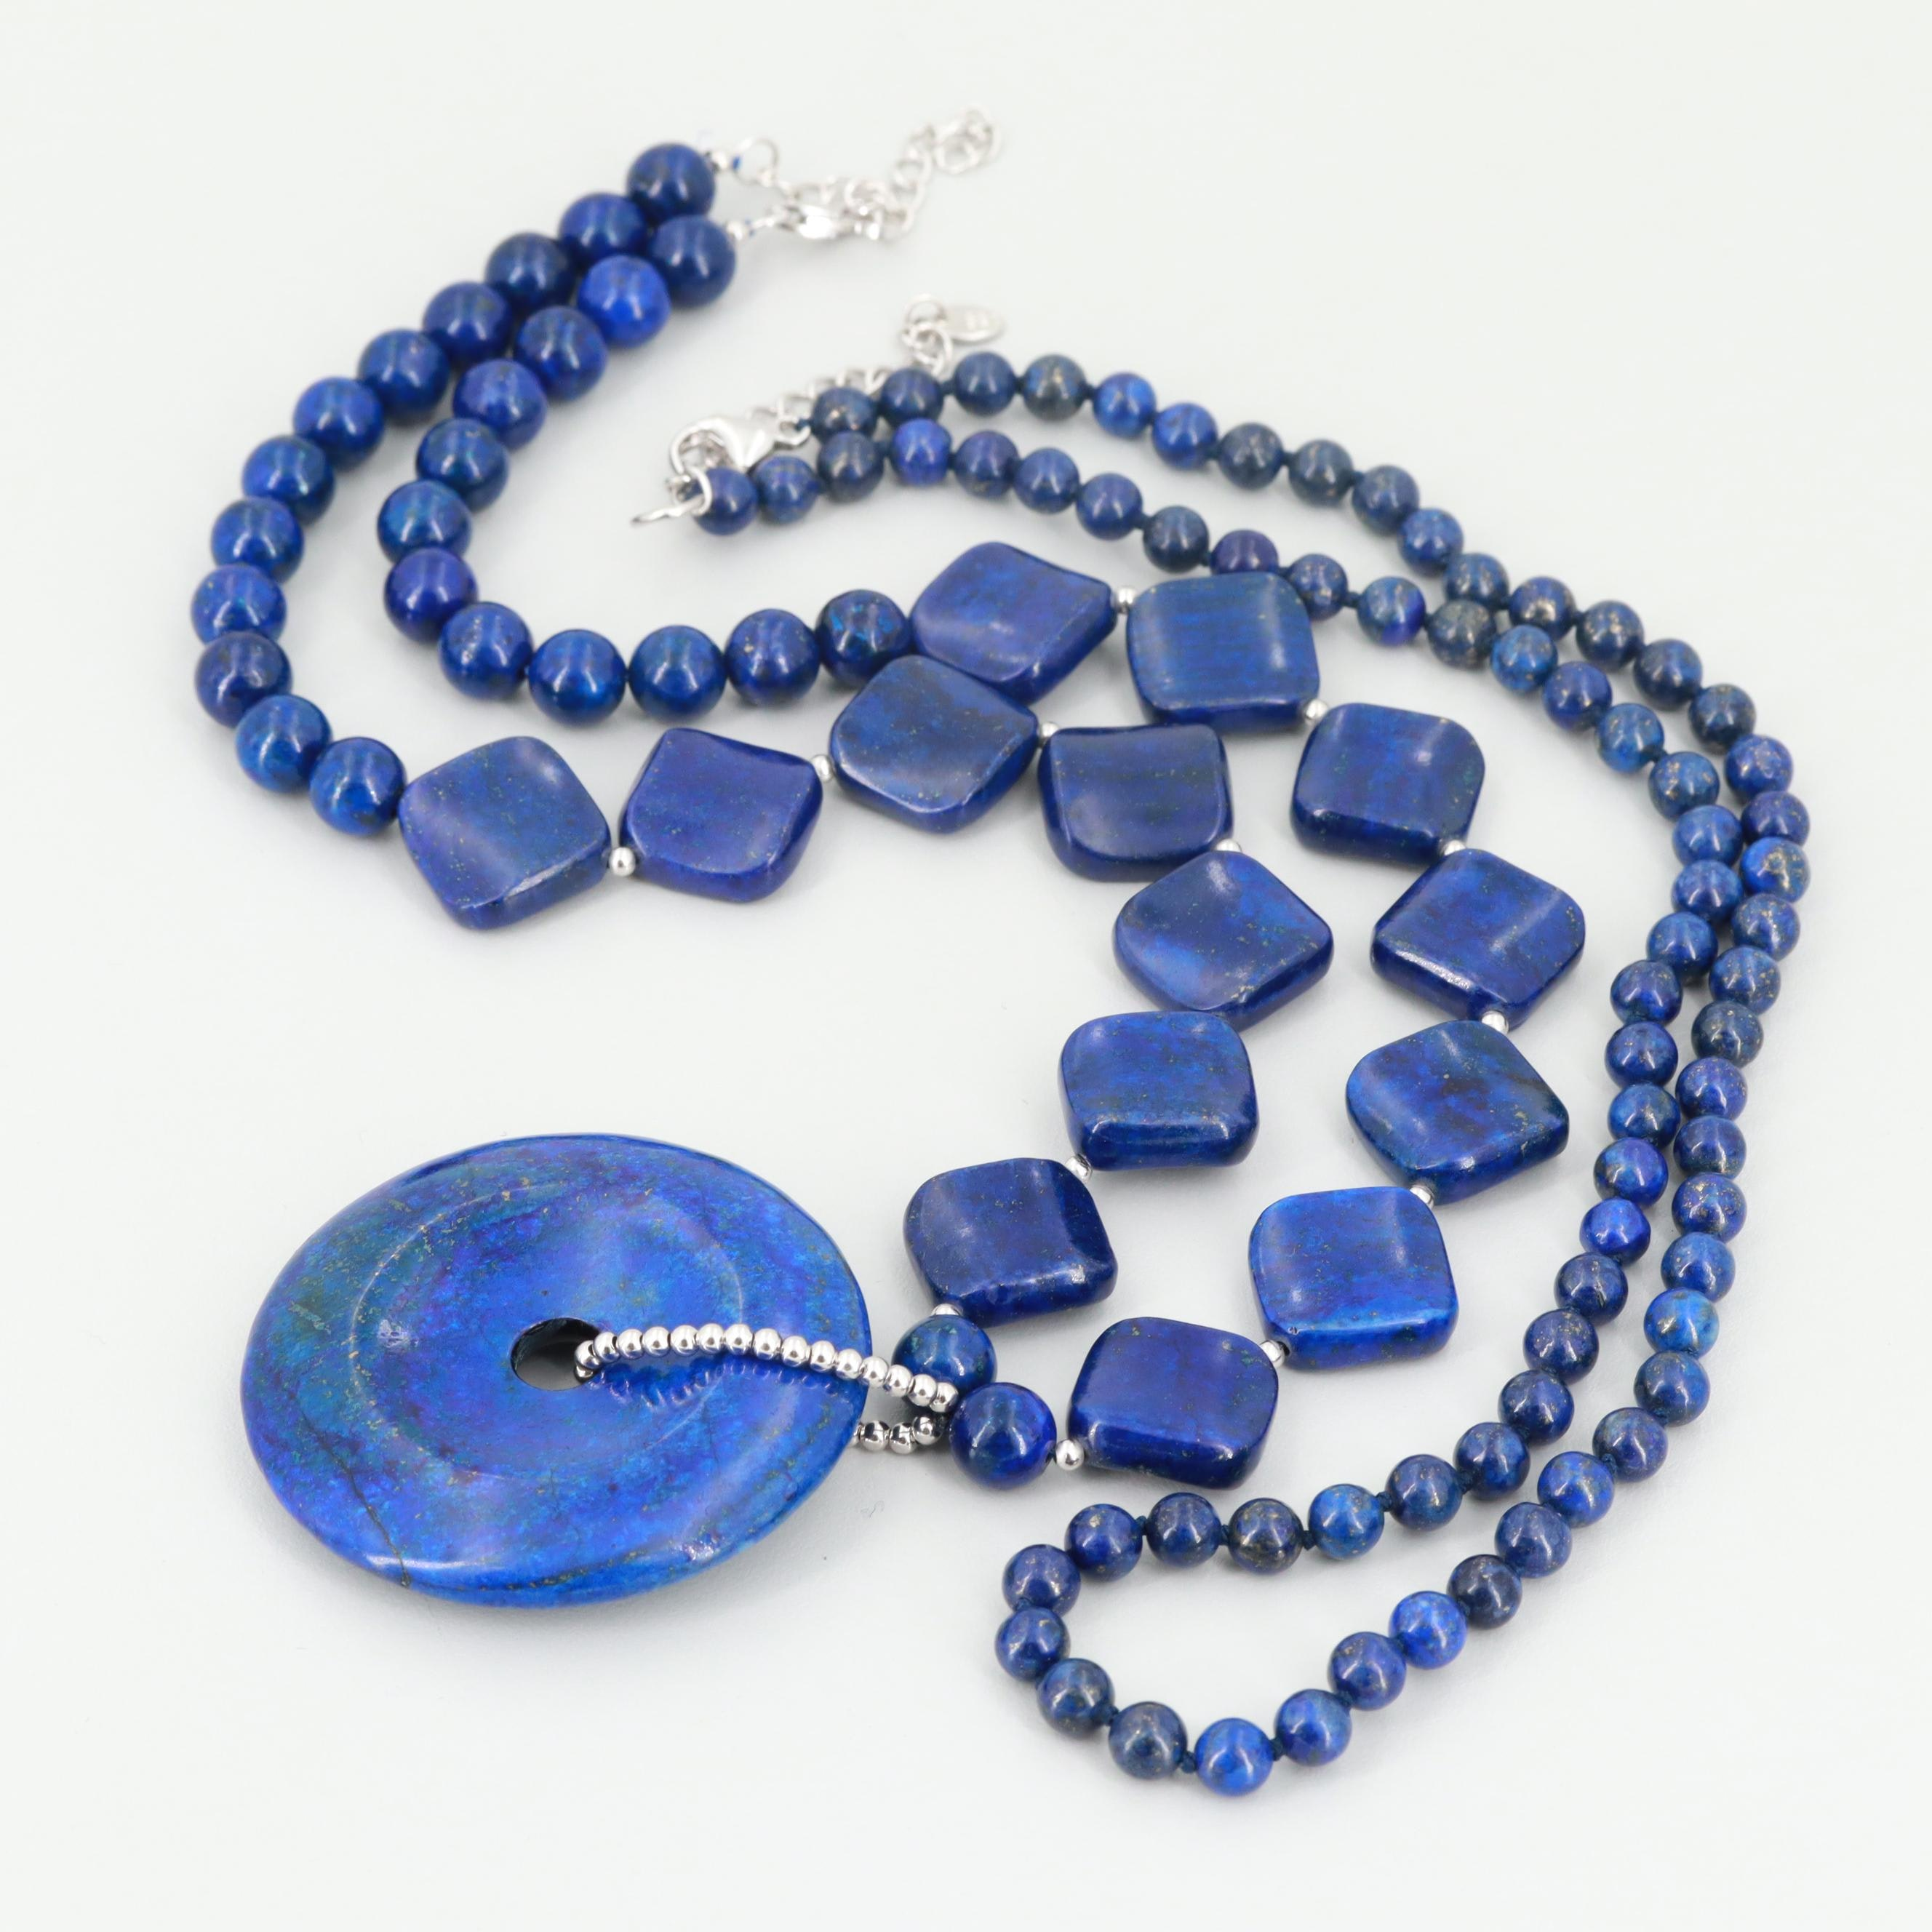 Sterling Silver Dyed Lapis Lazuli Necklaces